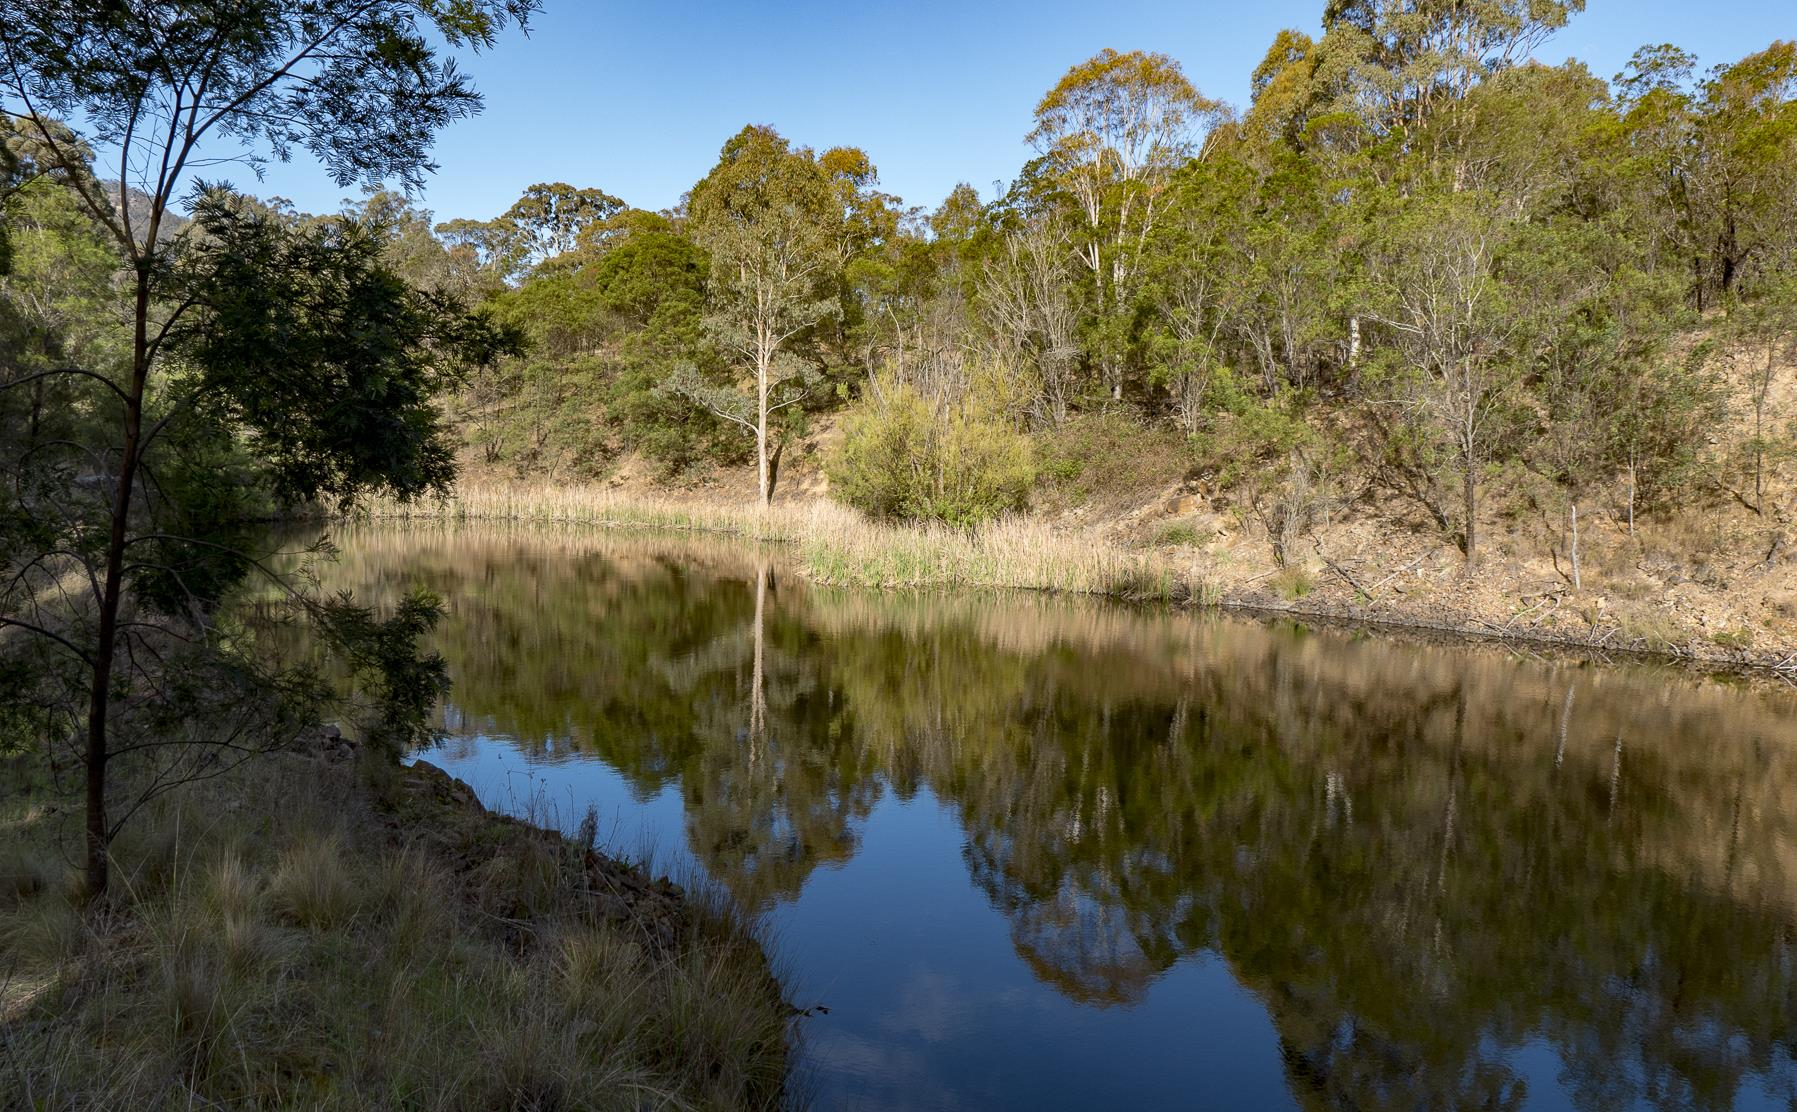 Lot 366/466 Coxs River Rd Little Hartley NSW 2790